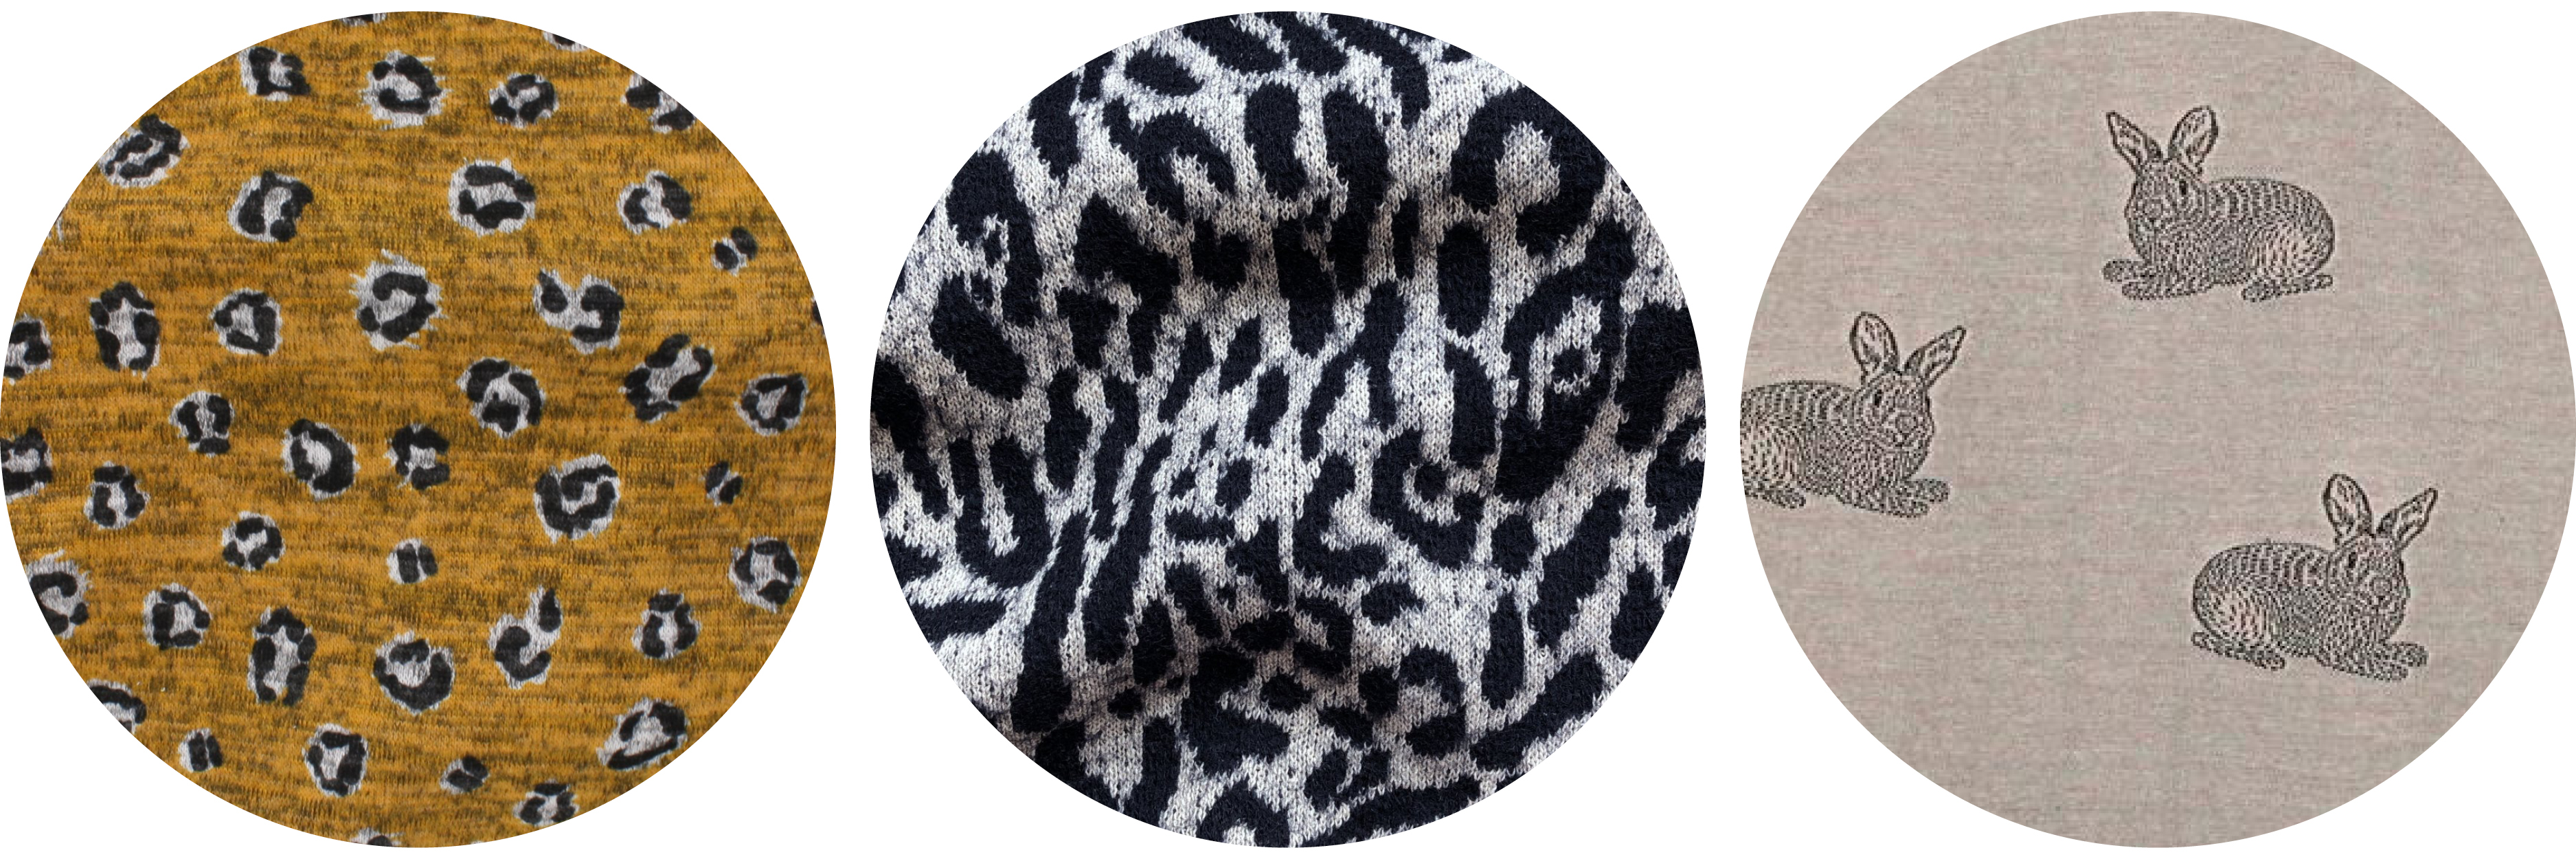 Tobin Sweater knit fabric ideas: animal prints